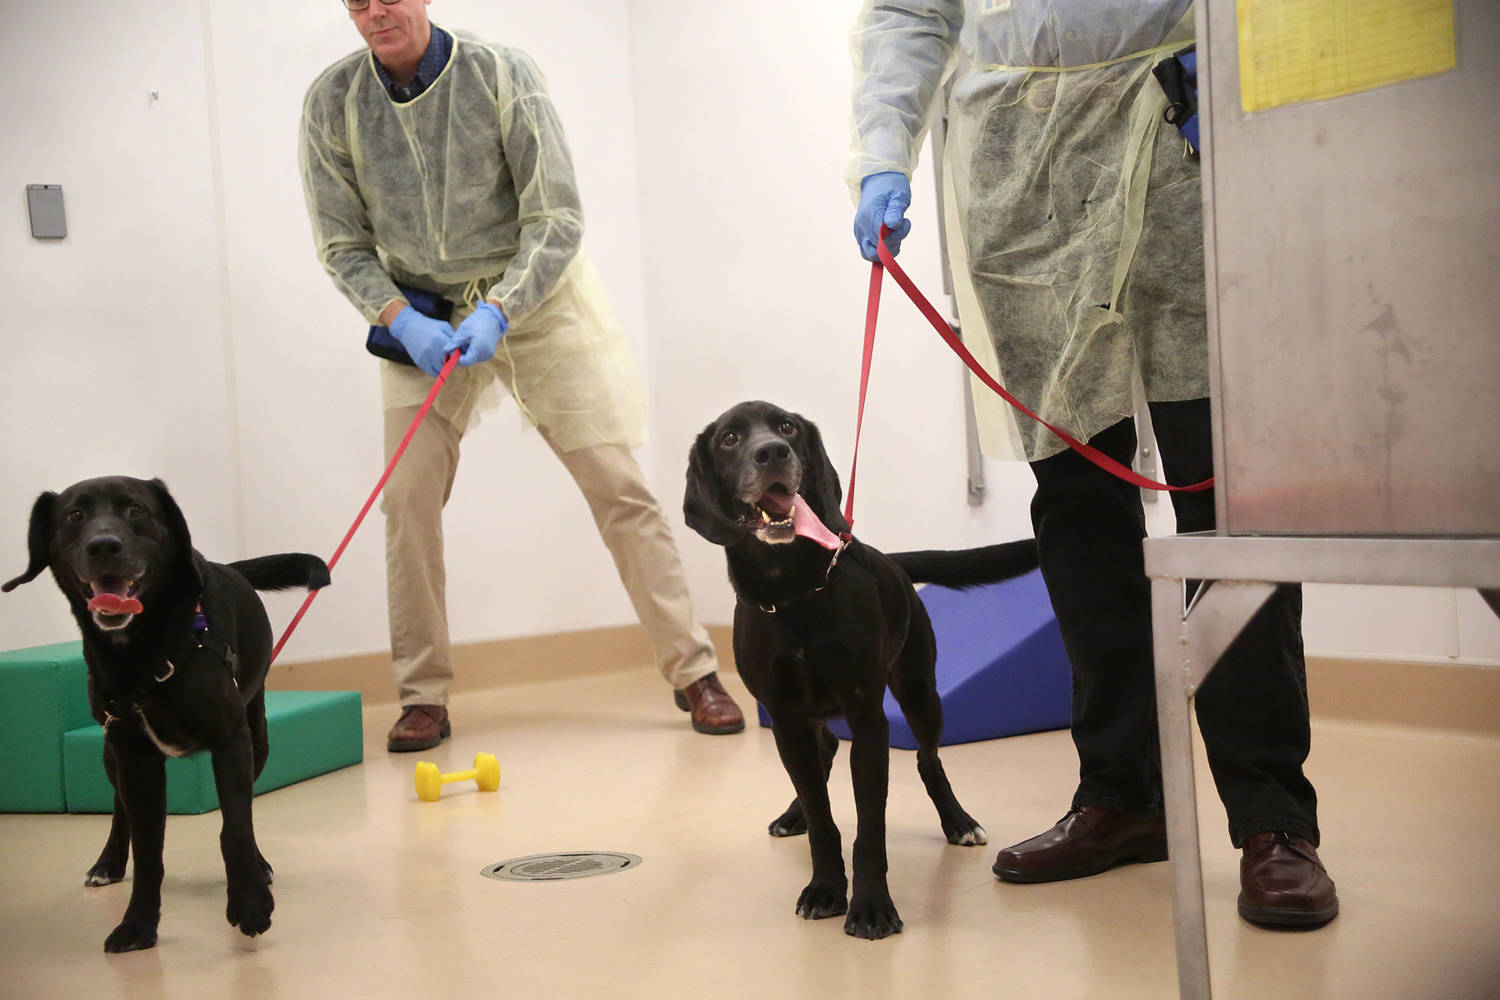 Two men wearing lab coats and blue rubber gloves each hold a black dog's leash.